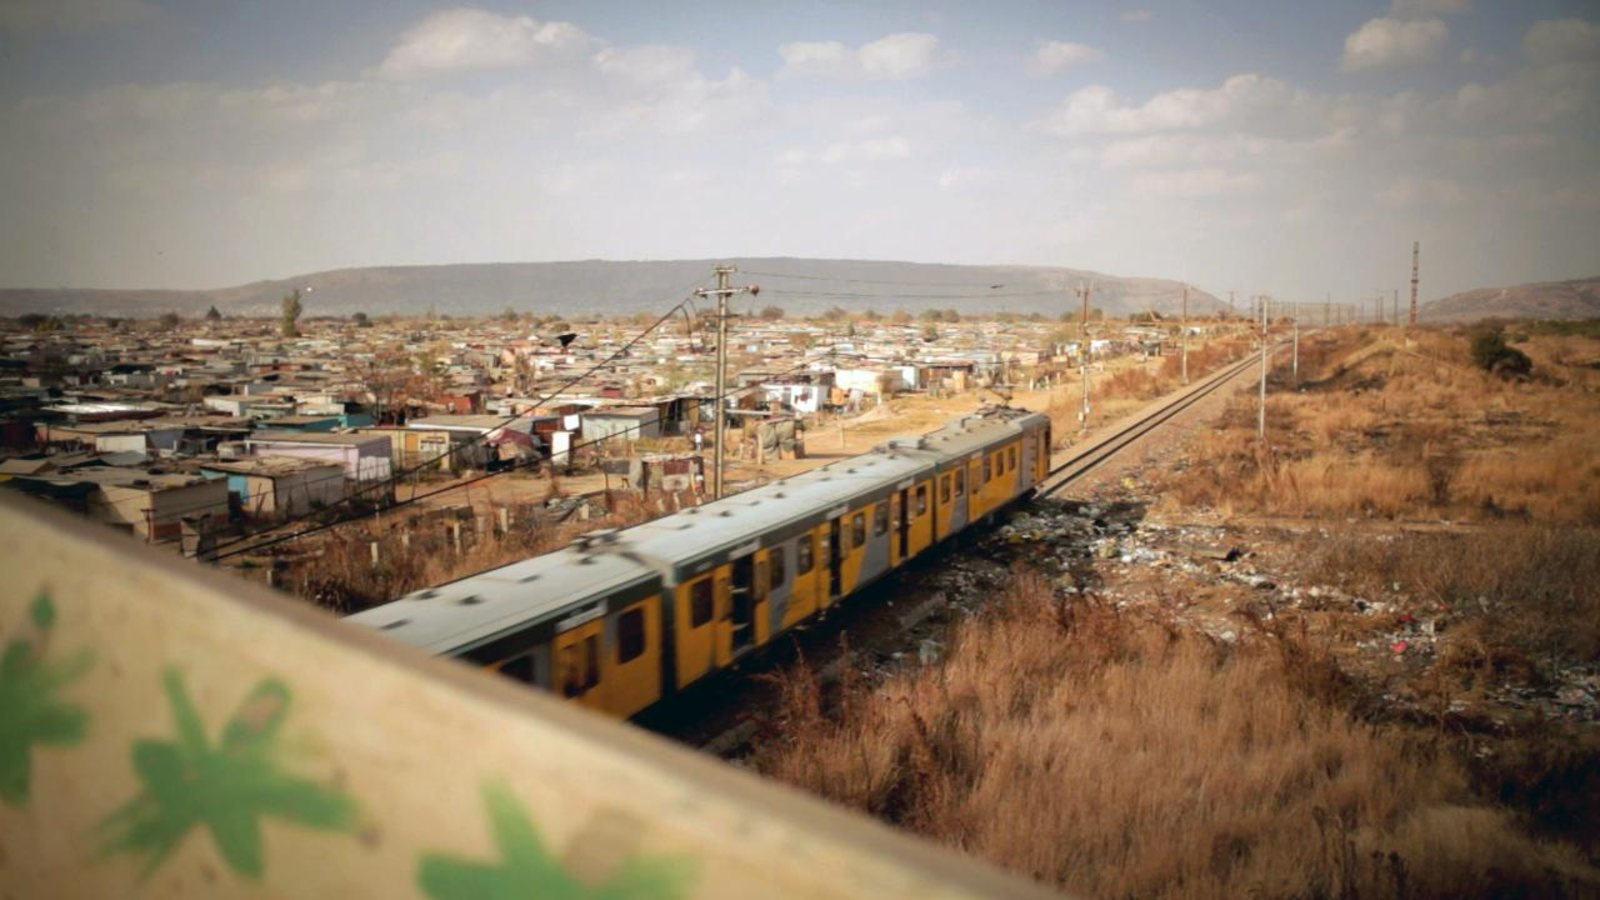 Meanwhile in Mamelodi - The Mamelodi township in South Africa